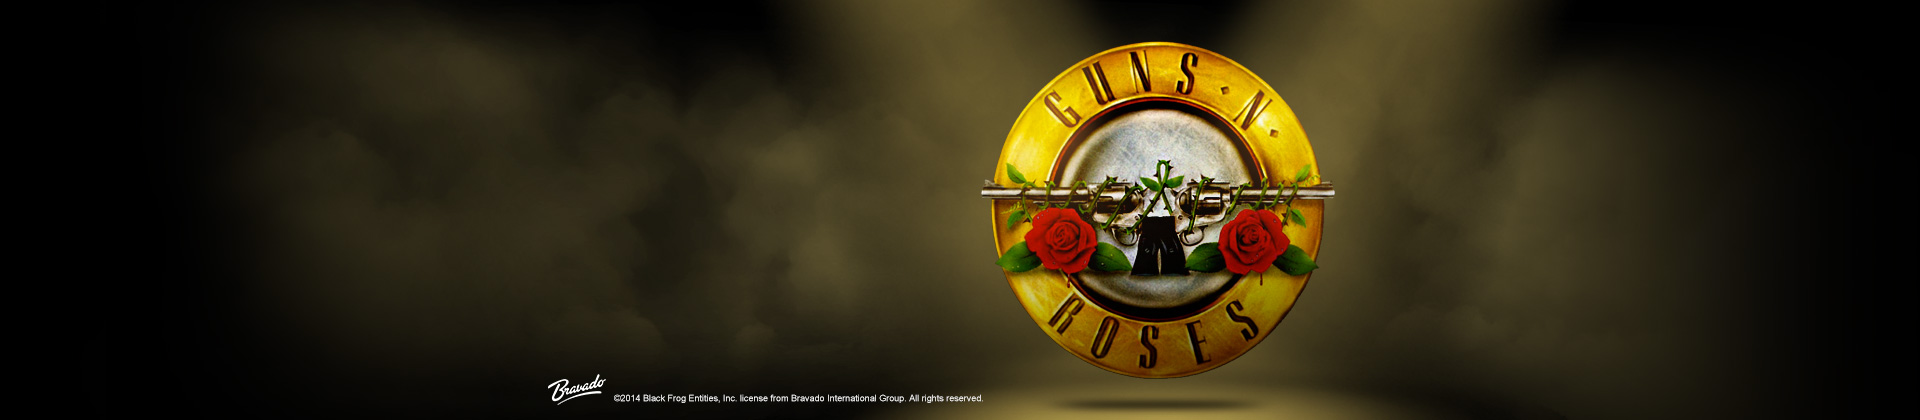 guns n roses slot online casino